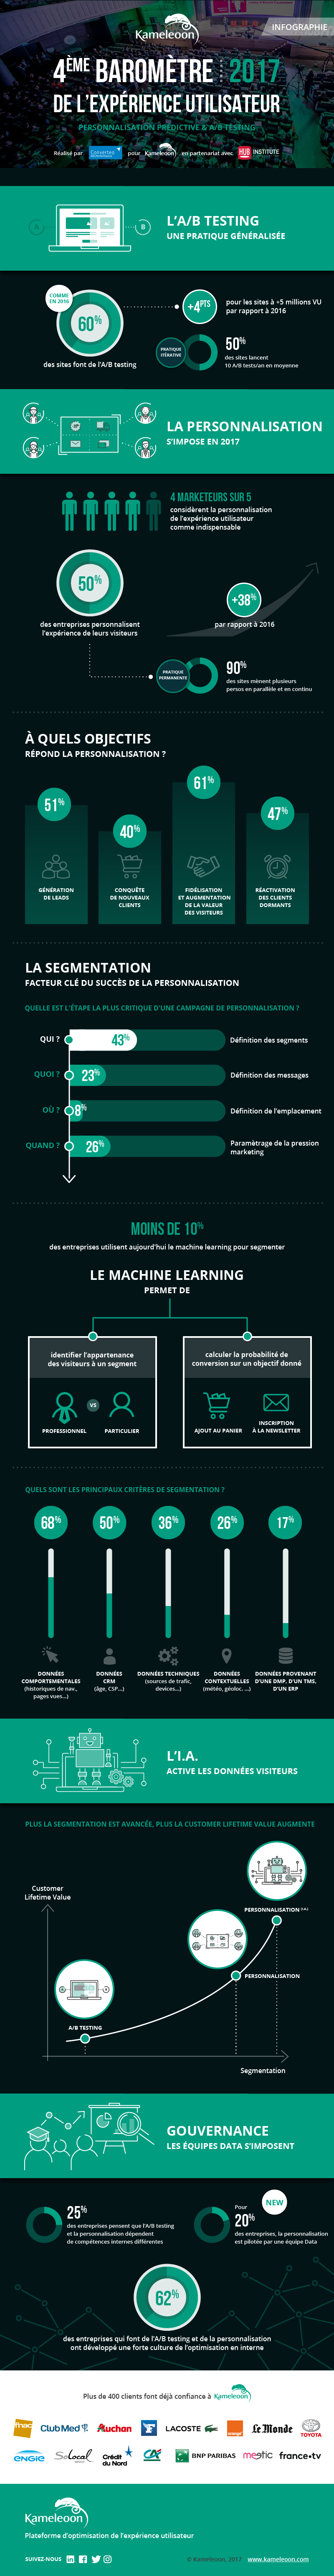 infographie_kameleoon_converteo_barometre_2017_machine-learning